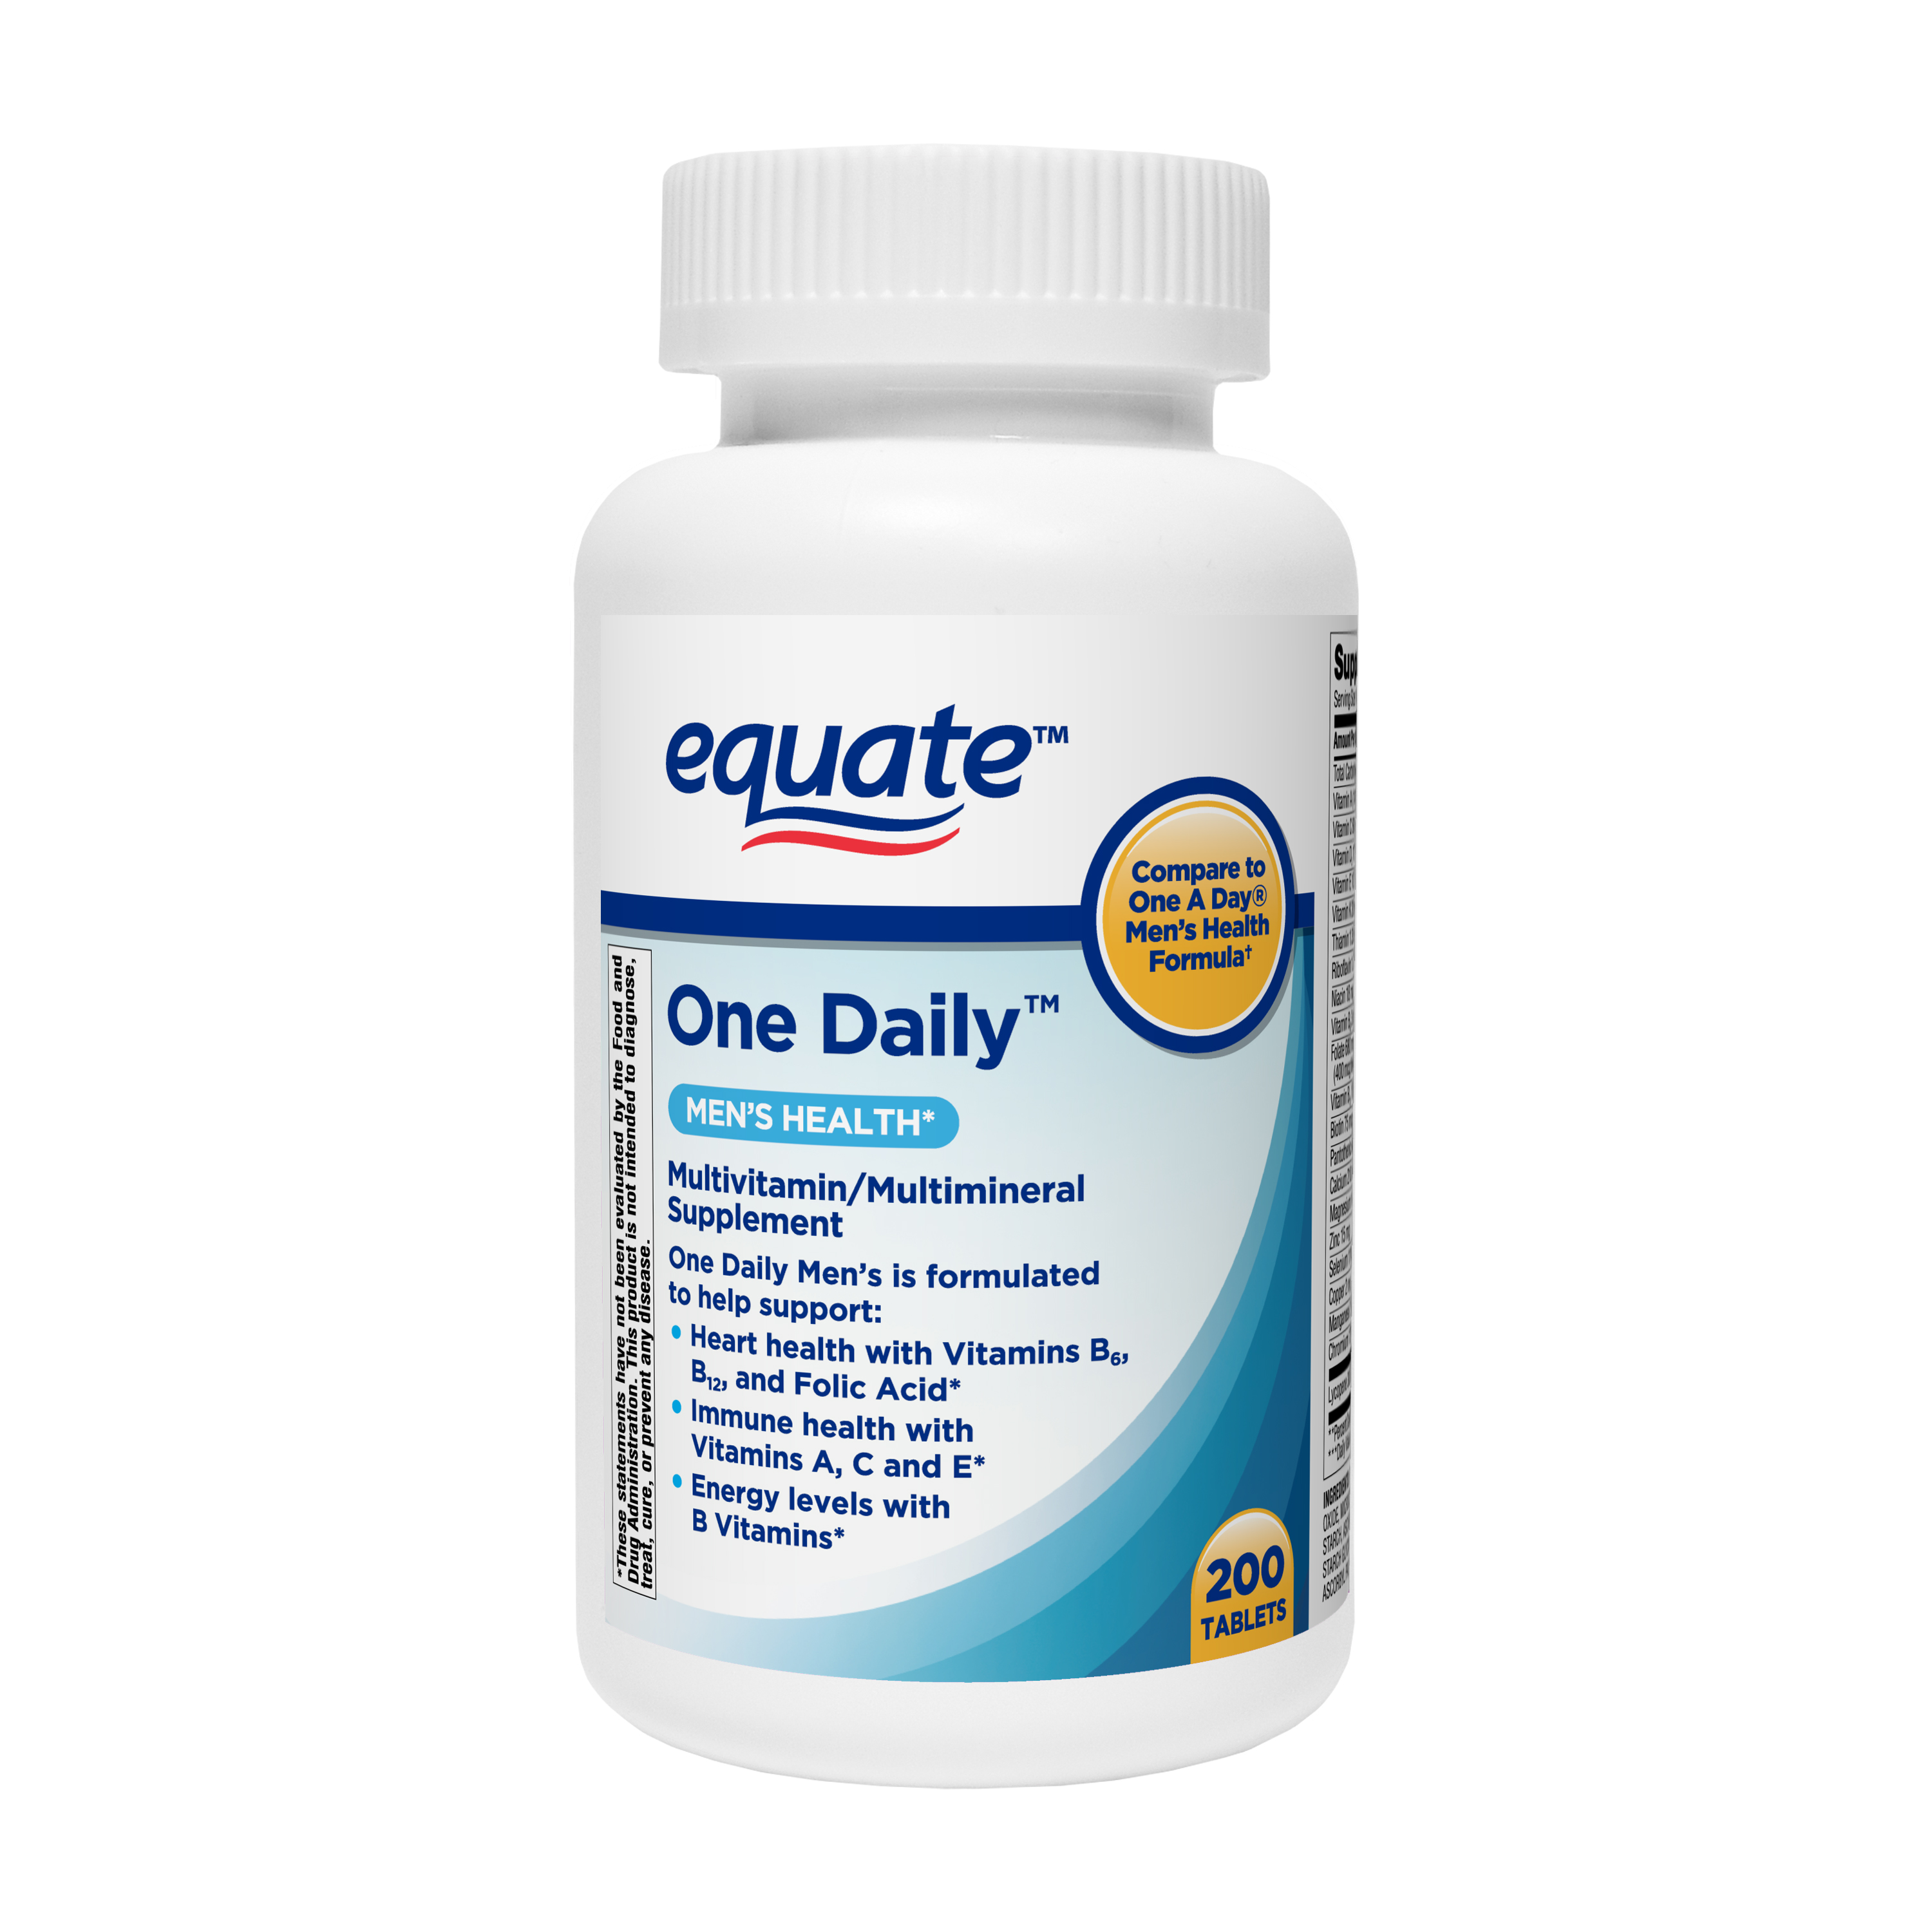 Equate One Daily Men S Health Multivitamin Multimineral Supplement Tablets 200 Count Walmart Com Walmart Com